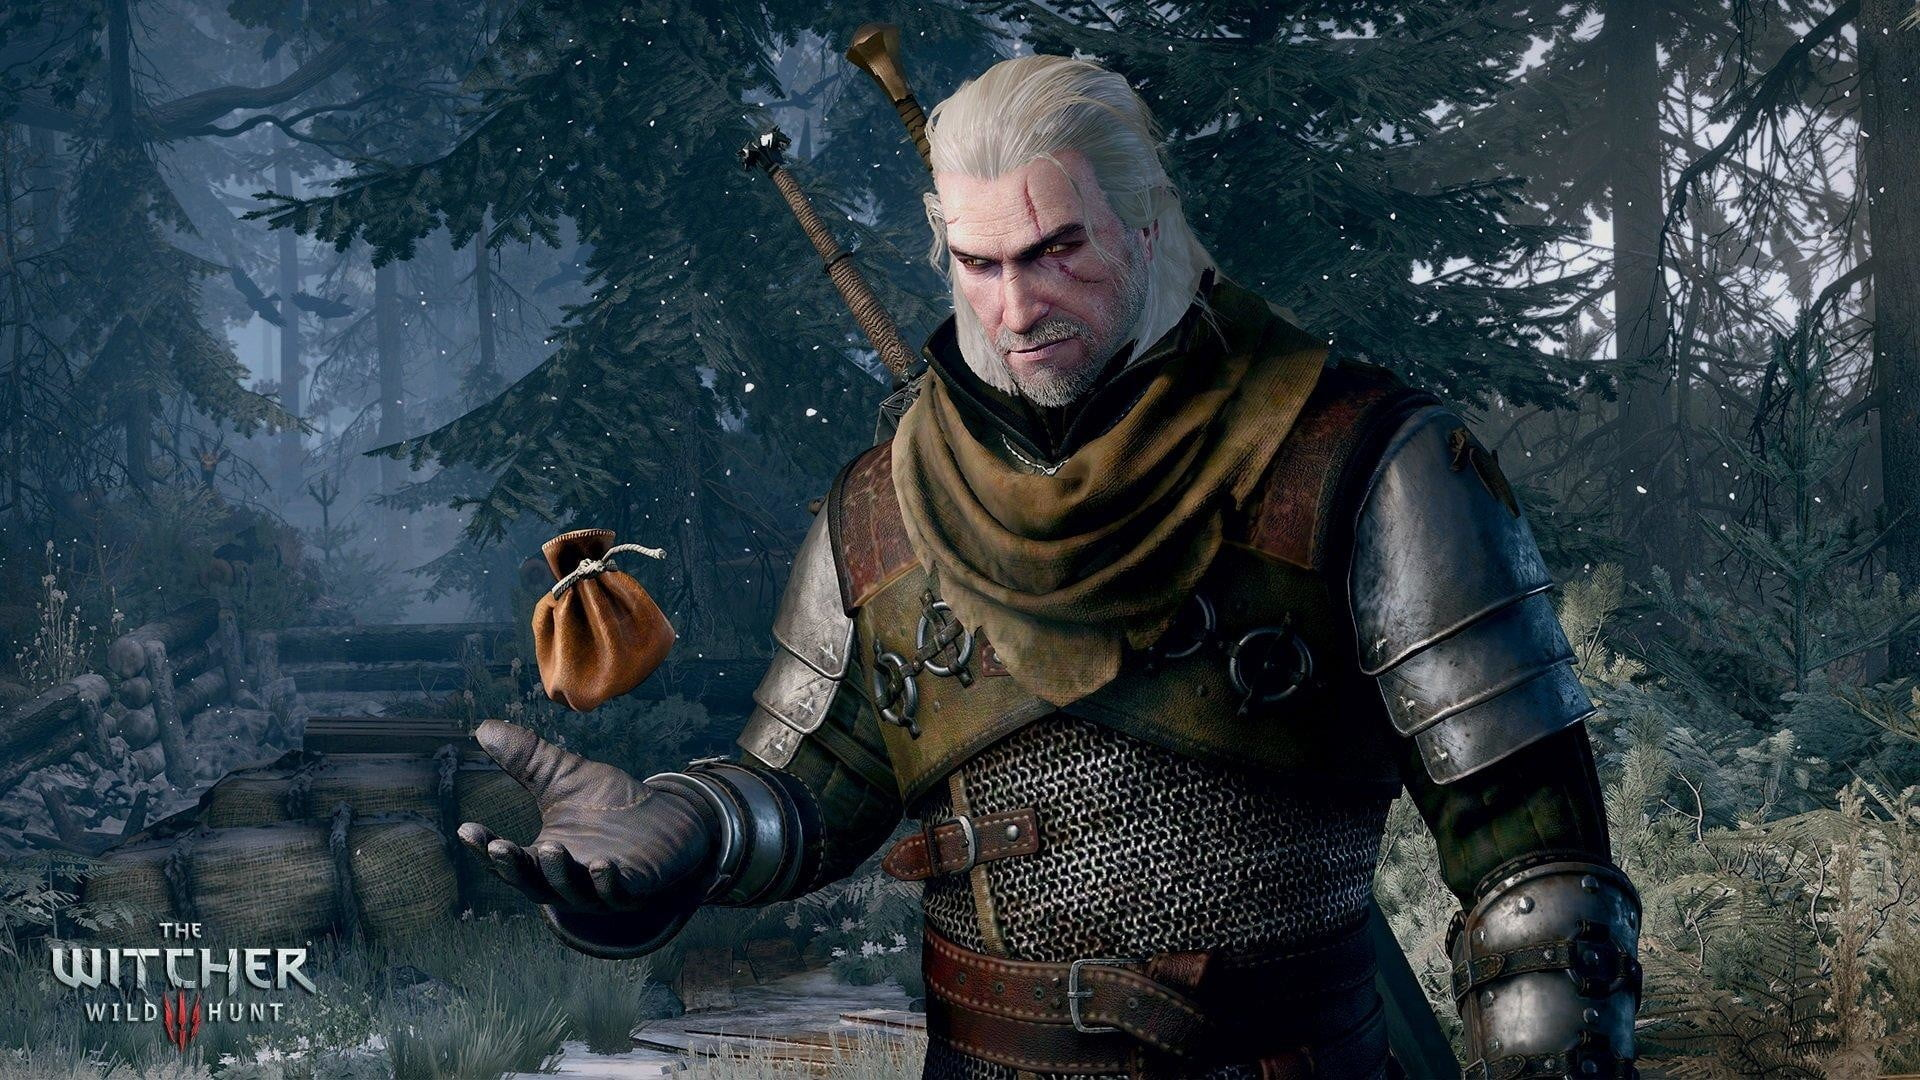 How to Make Infinite Money in The Witcher 3: Wild Hunt | Digital Trends